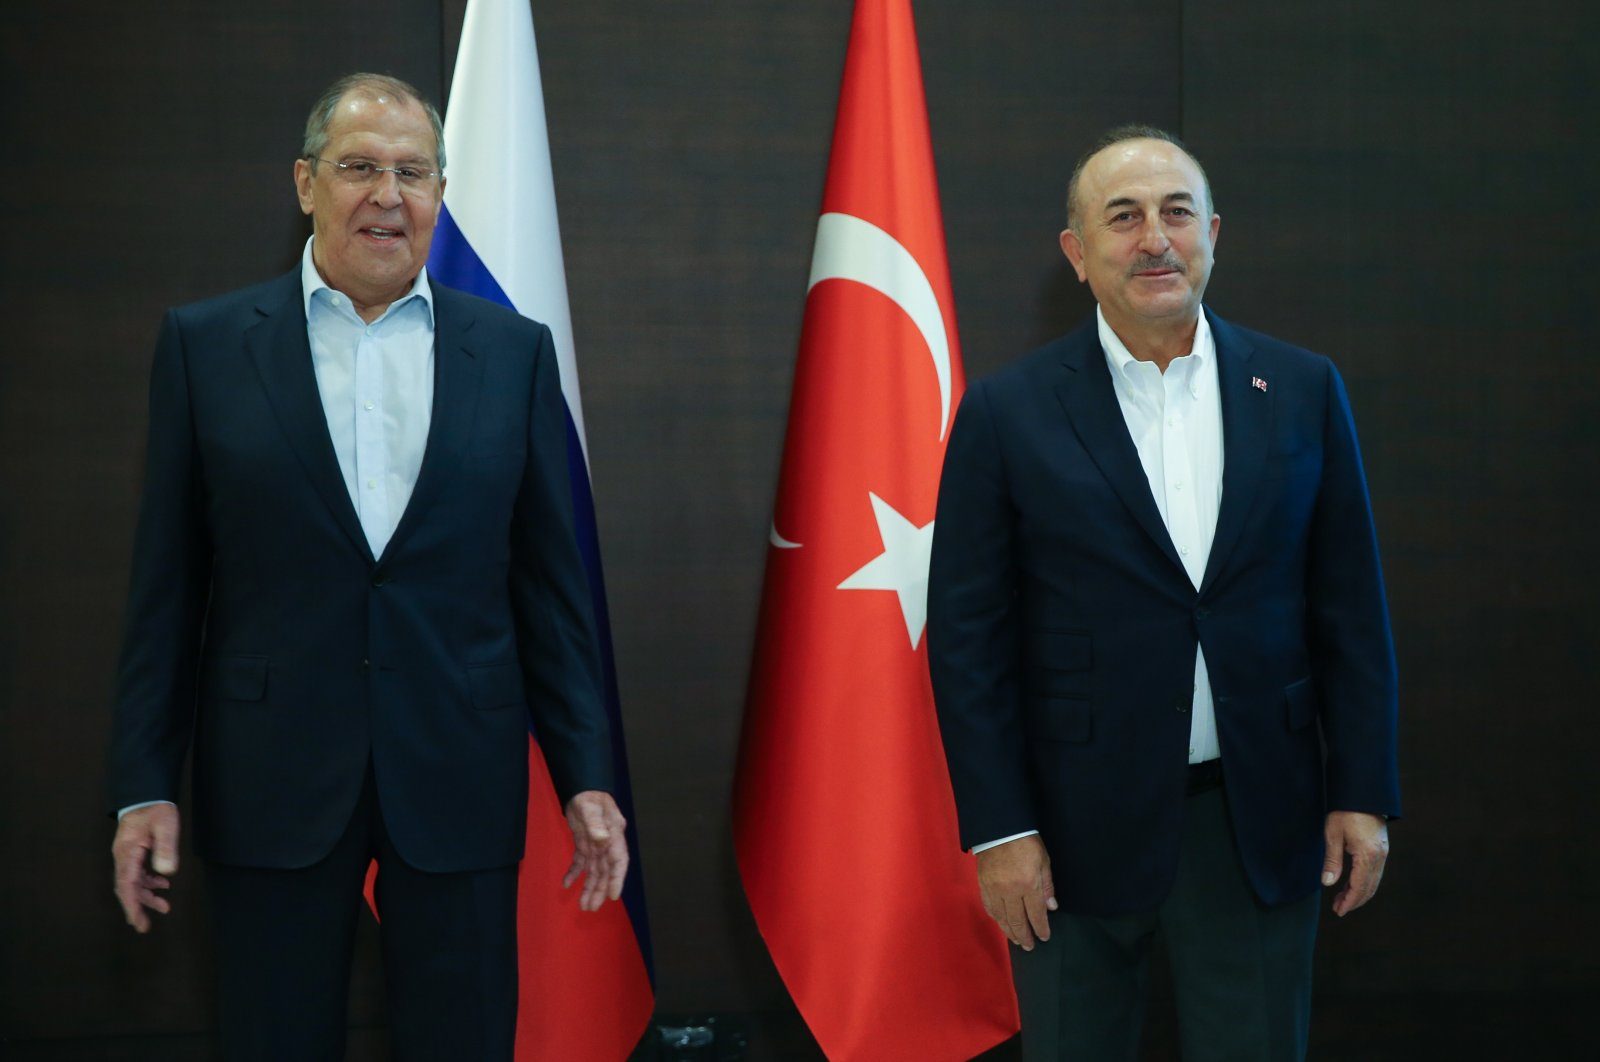 Turkish Foreign Minister Mevlüt Çavuşoğlu (R) and his Russian counterpart Sergey Lavrov pose for a photo before a press conference in Antalya, Turkey, June 30, 2021. (AA Photo)